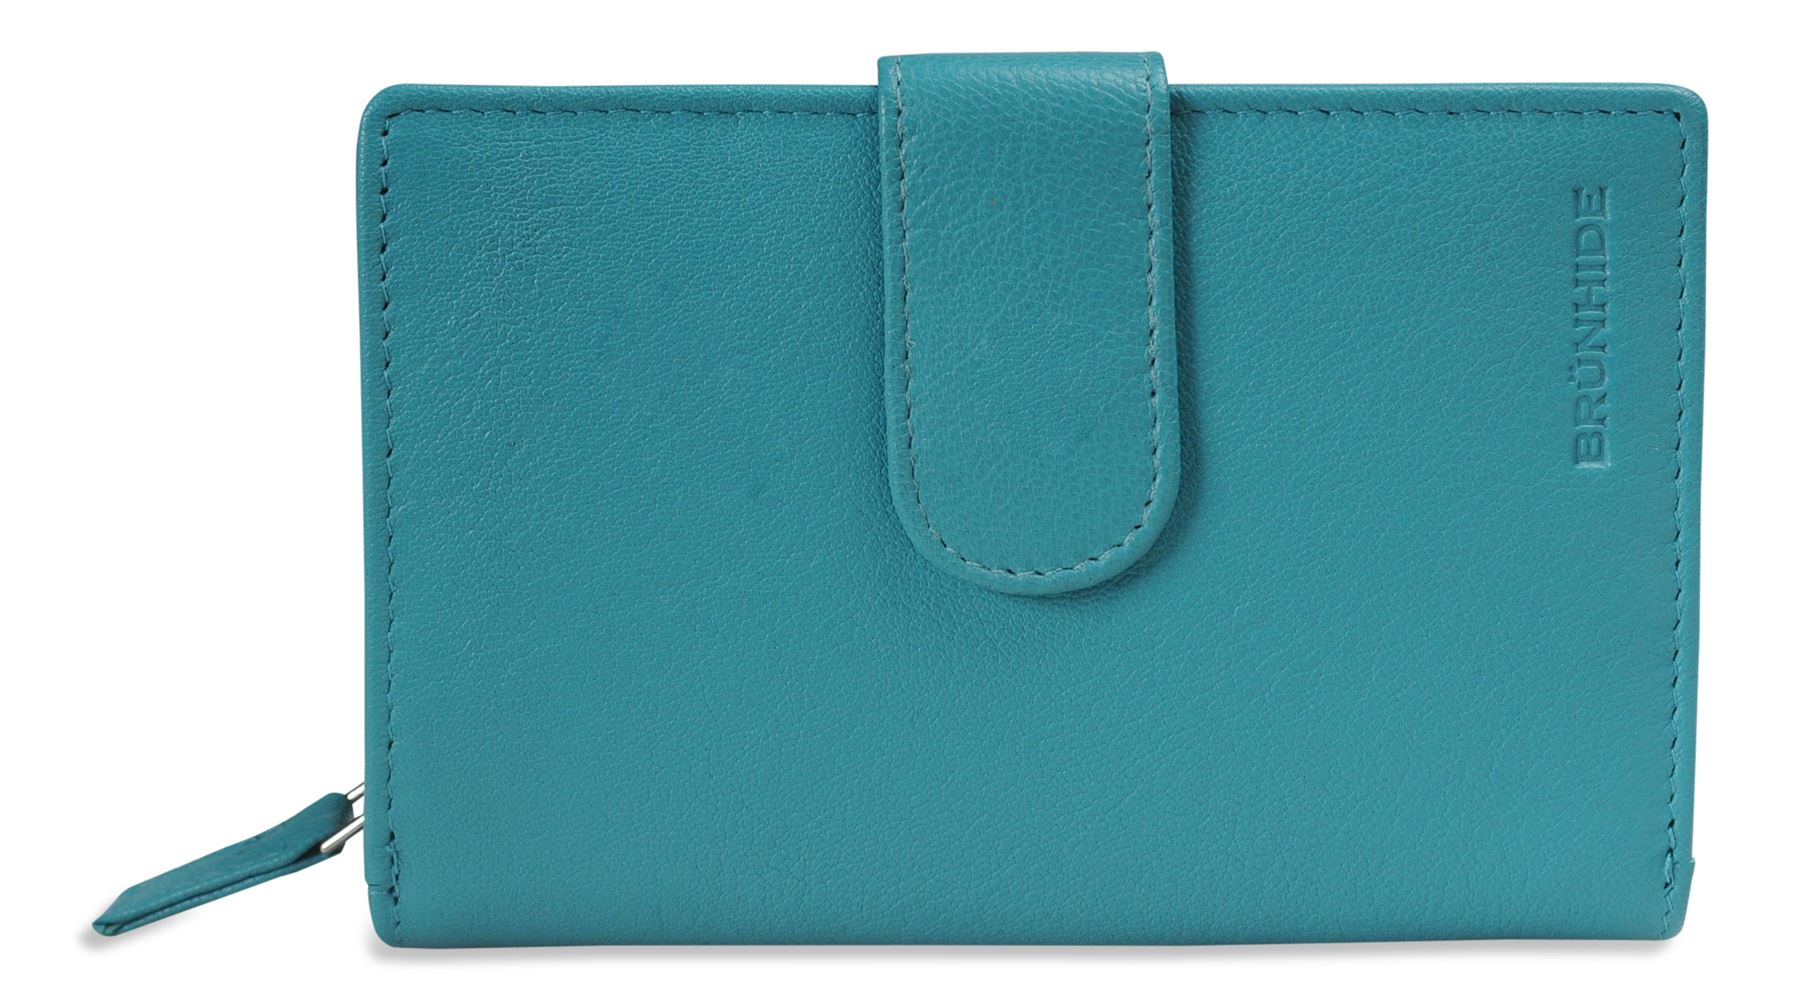 Brunhide-Large-Stivali-in-Pelle-Purse-Wallet-organizer-vera-da-donna-207-300